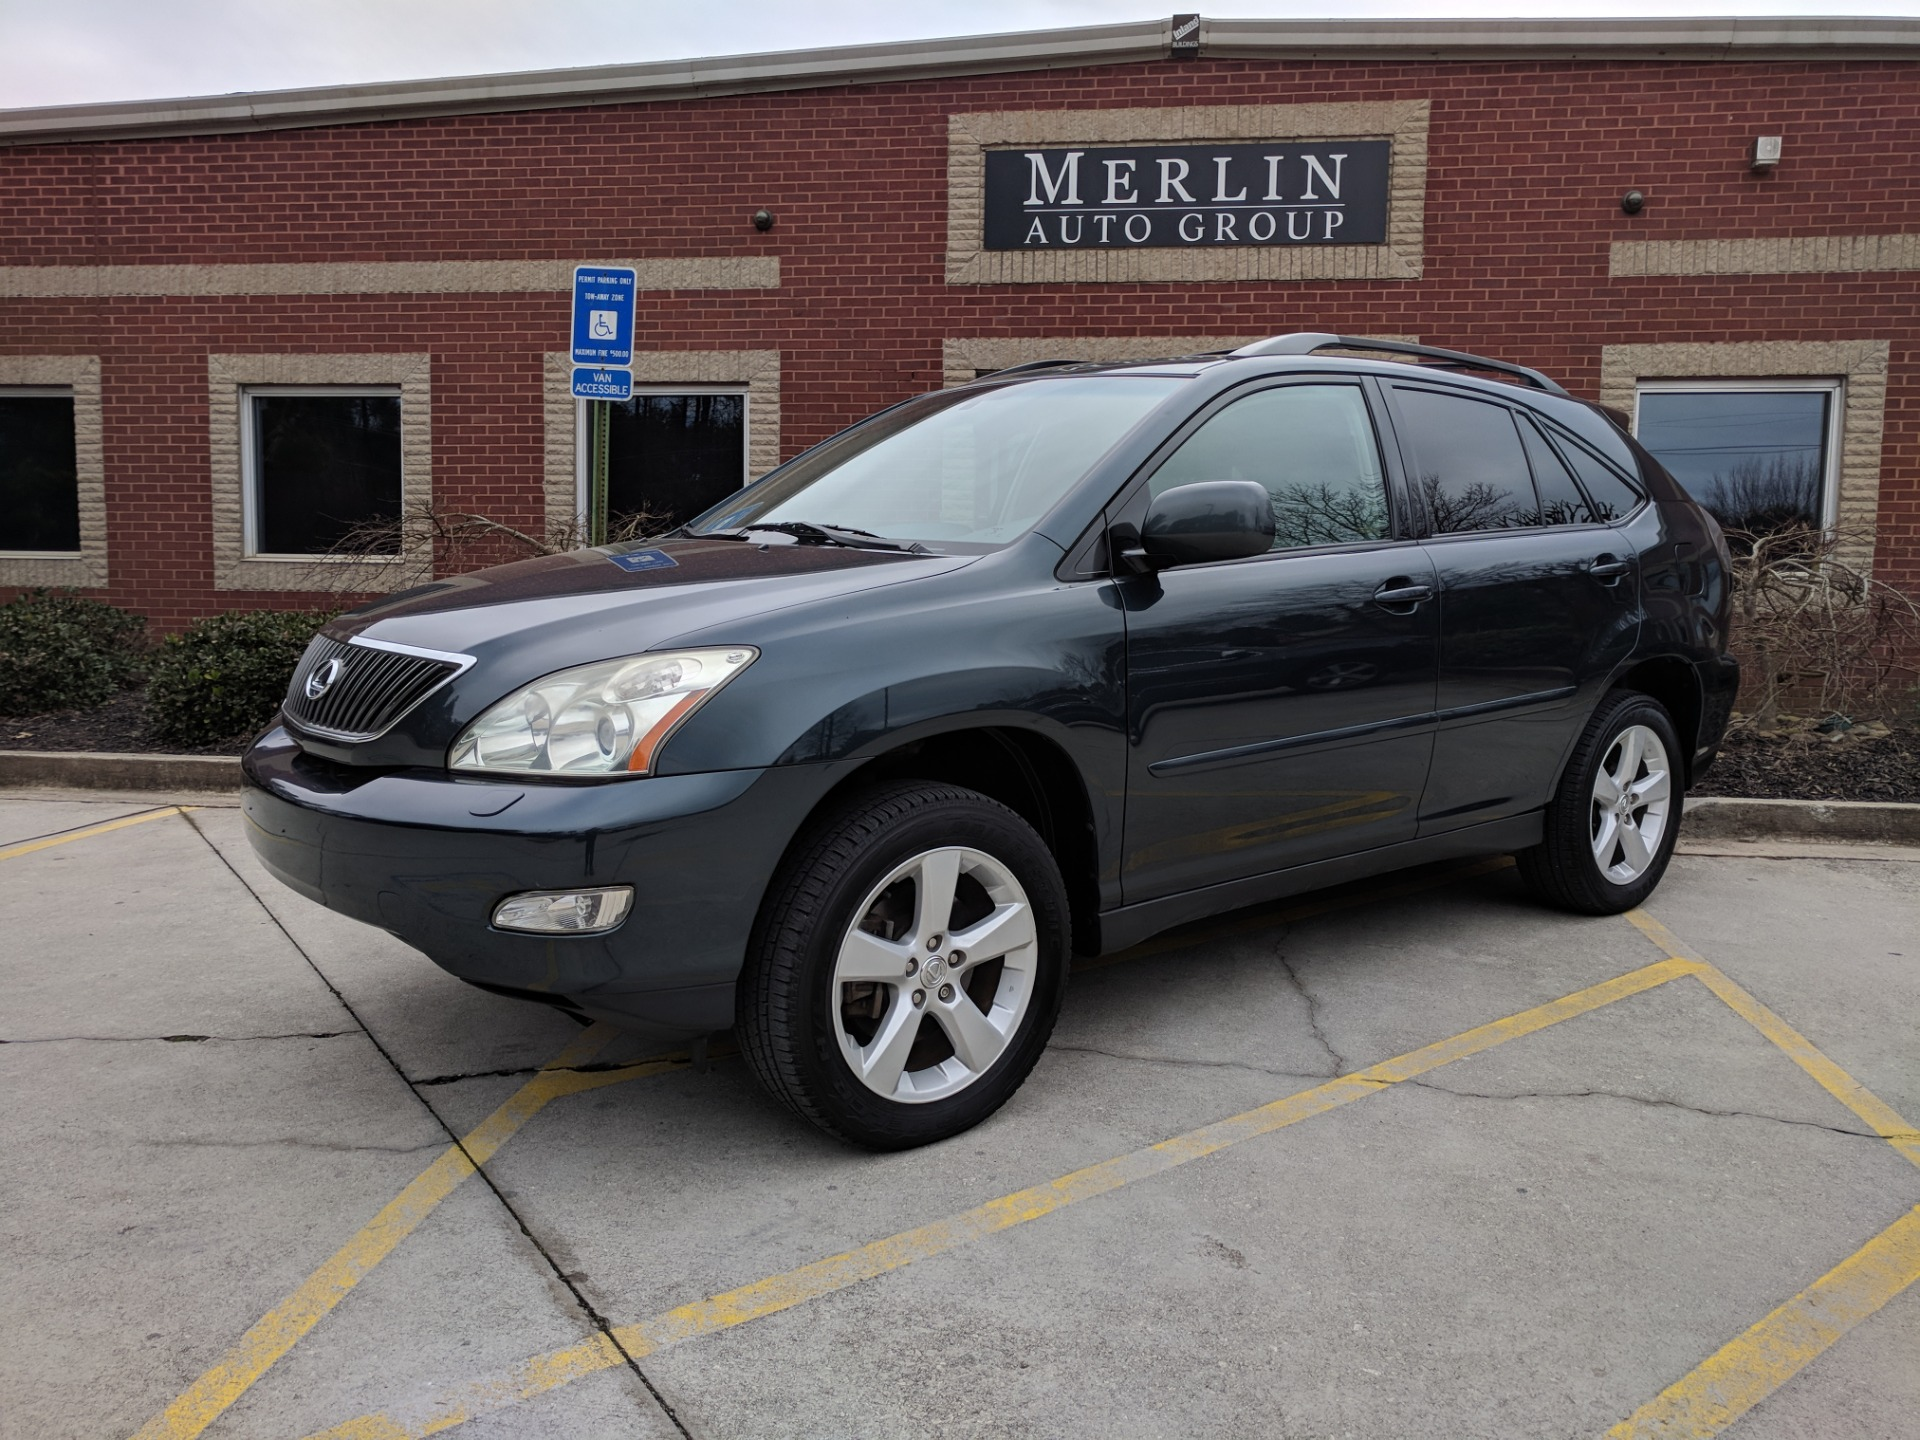 Used 2004 Lexus RX 330 stock P3862 Ultra Luxury Car from Merlin